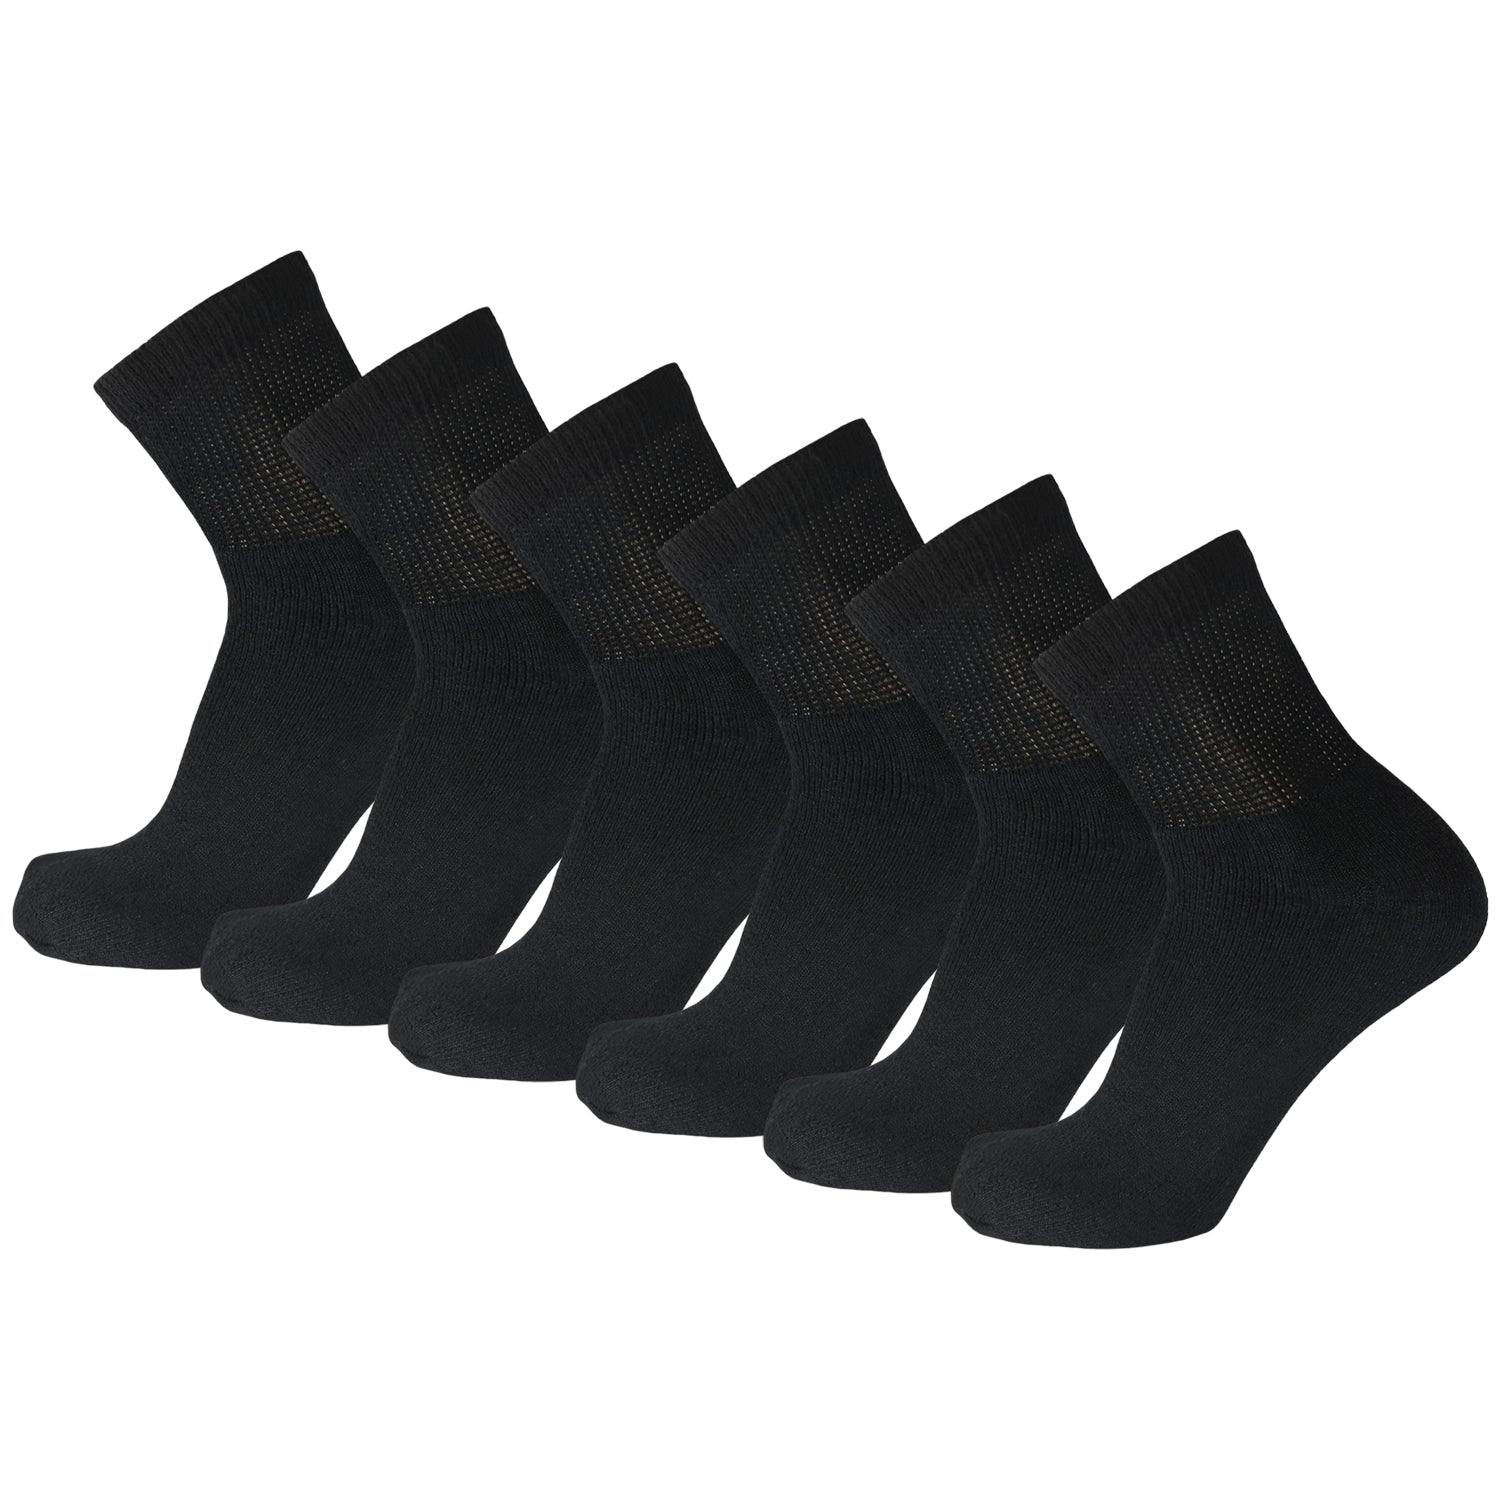 Black Non Binding Cotton Diabetic Ankle Socks 6 Pairs